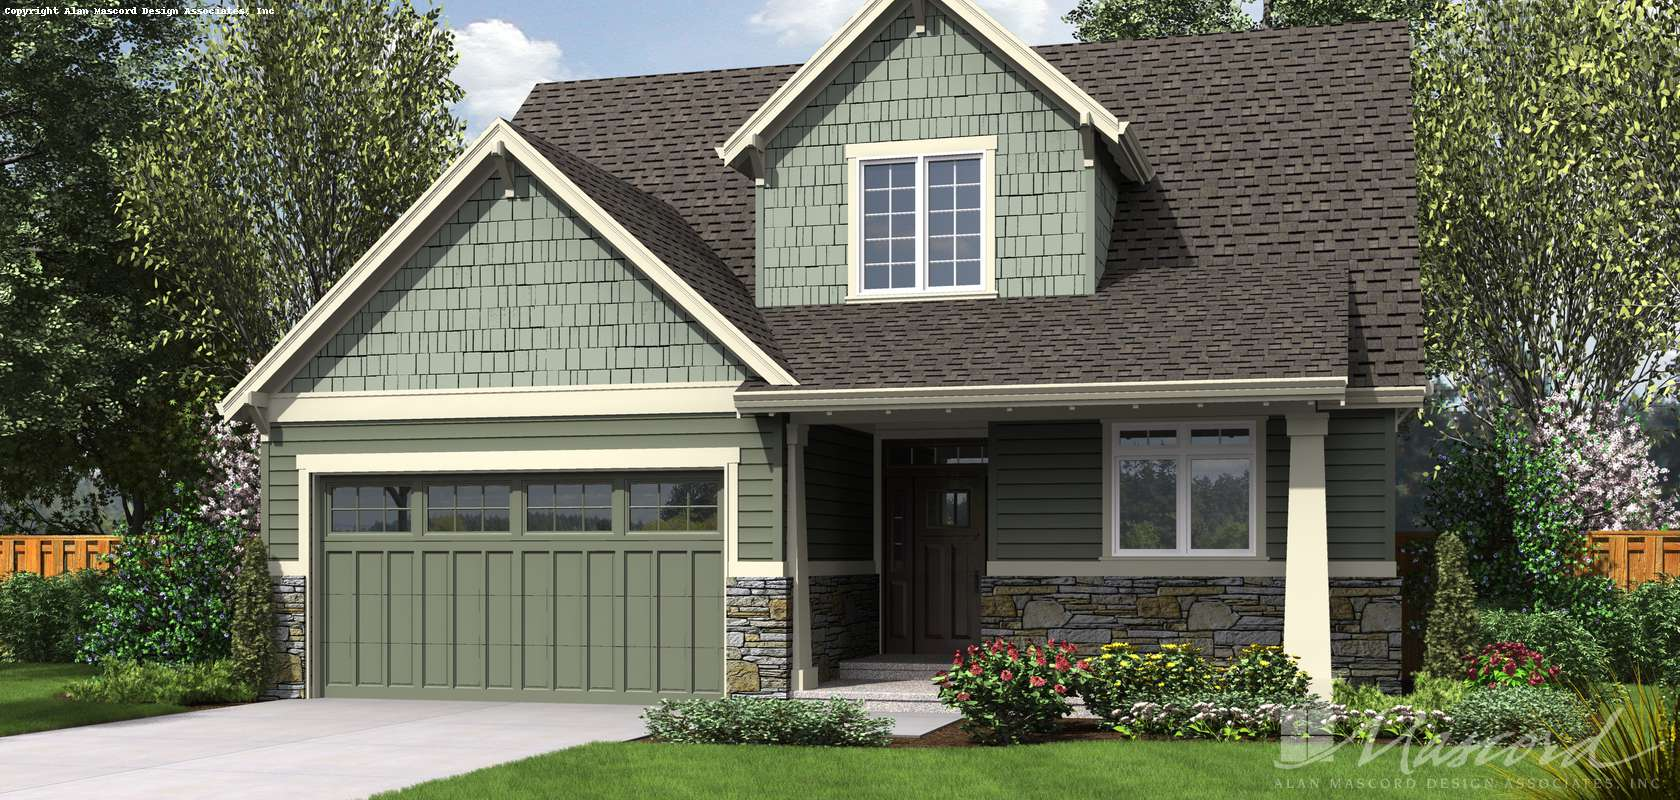 Mascord House Plan 2185AB: The Scappoose